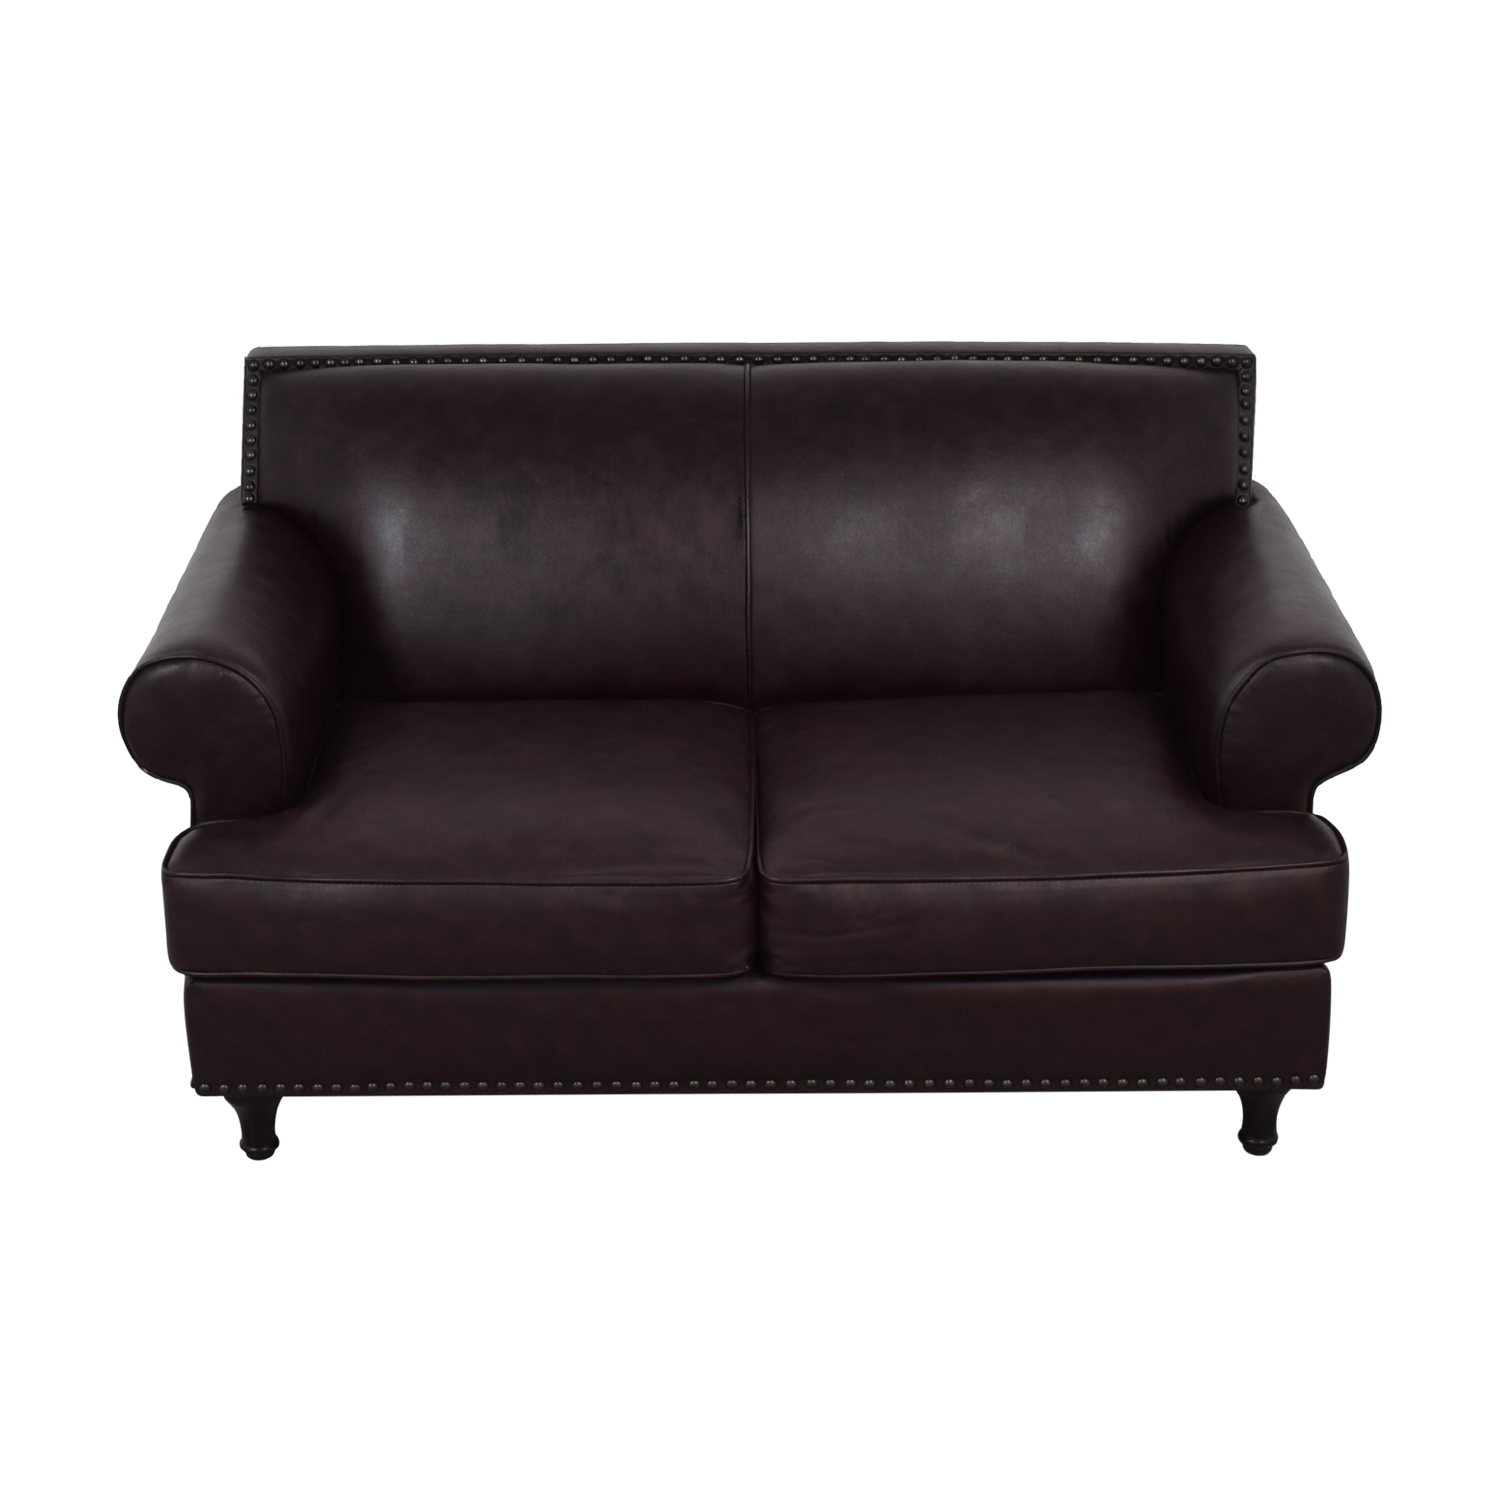 shop Pier 1 Imports Brown Leather Love Seat Pier 1 Imports